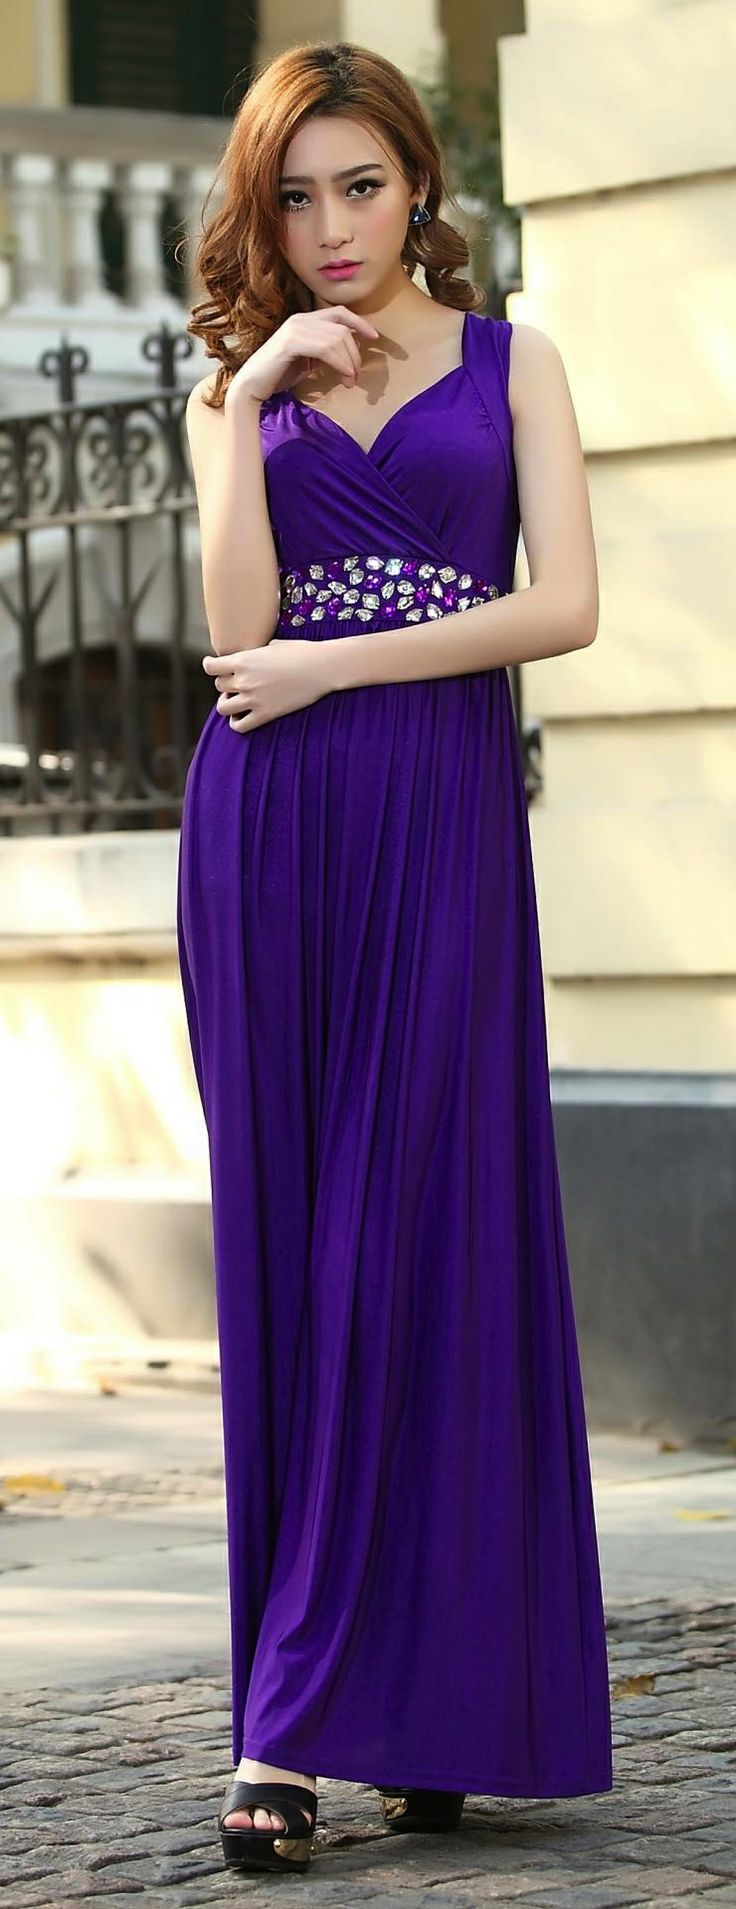 The 25 best cadbury purple bridesmaid dresses ideas on pinterest cadbury purple bridesmaid dress formal cocktail bead prom party evening maxi dress plus sizes evening cocktail ombrellifo Choice Image